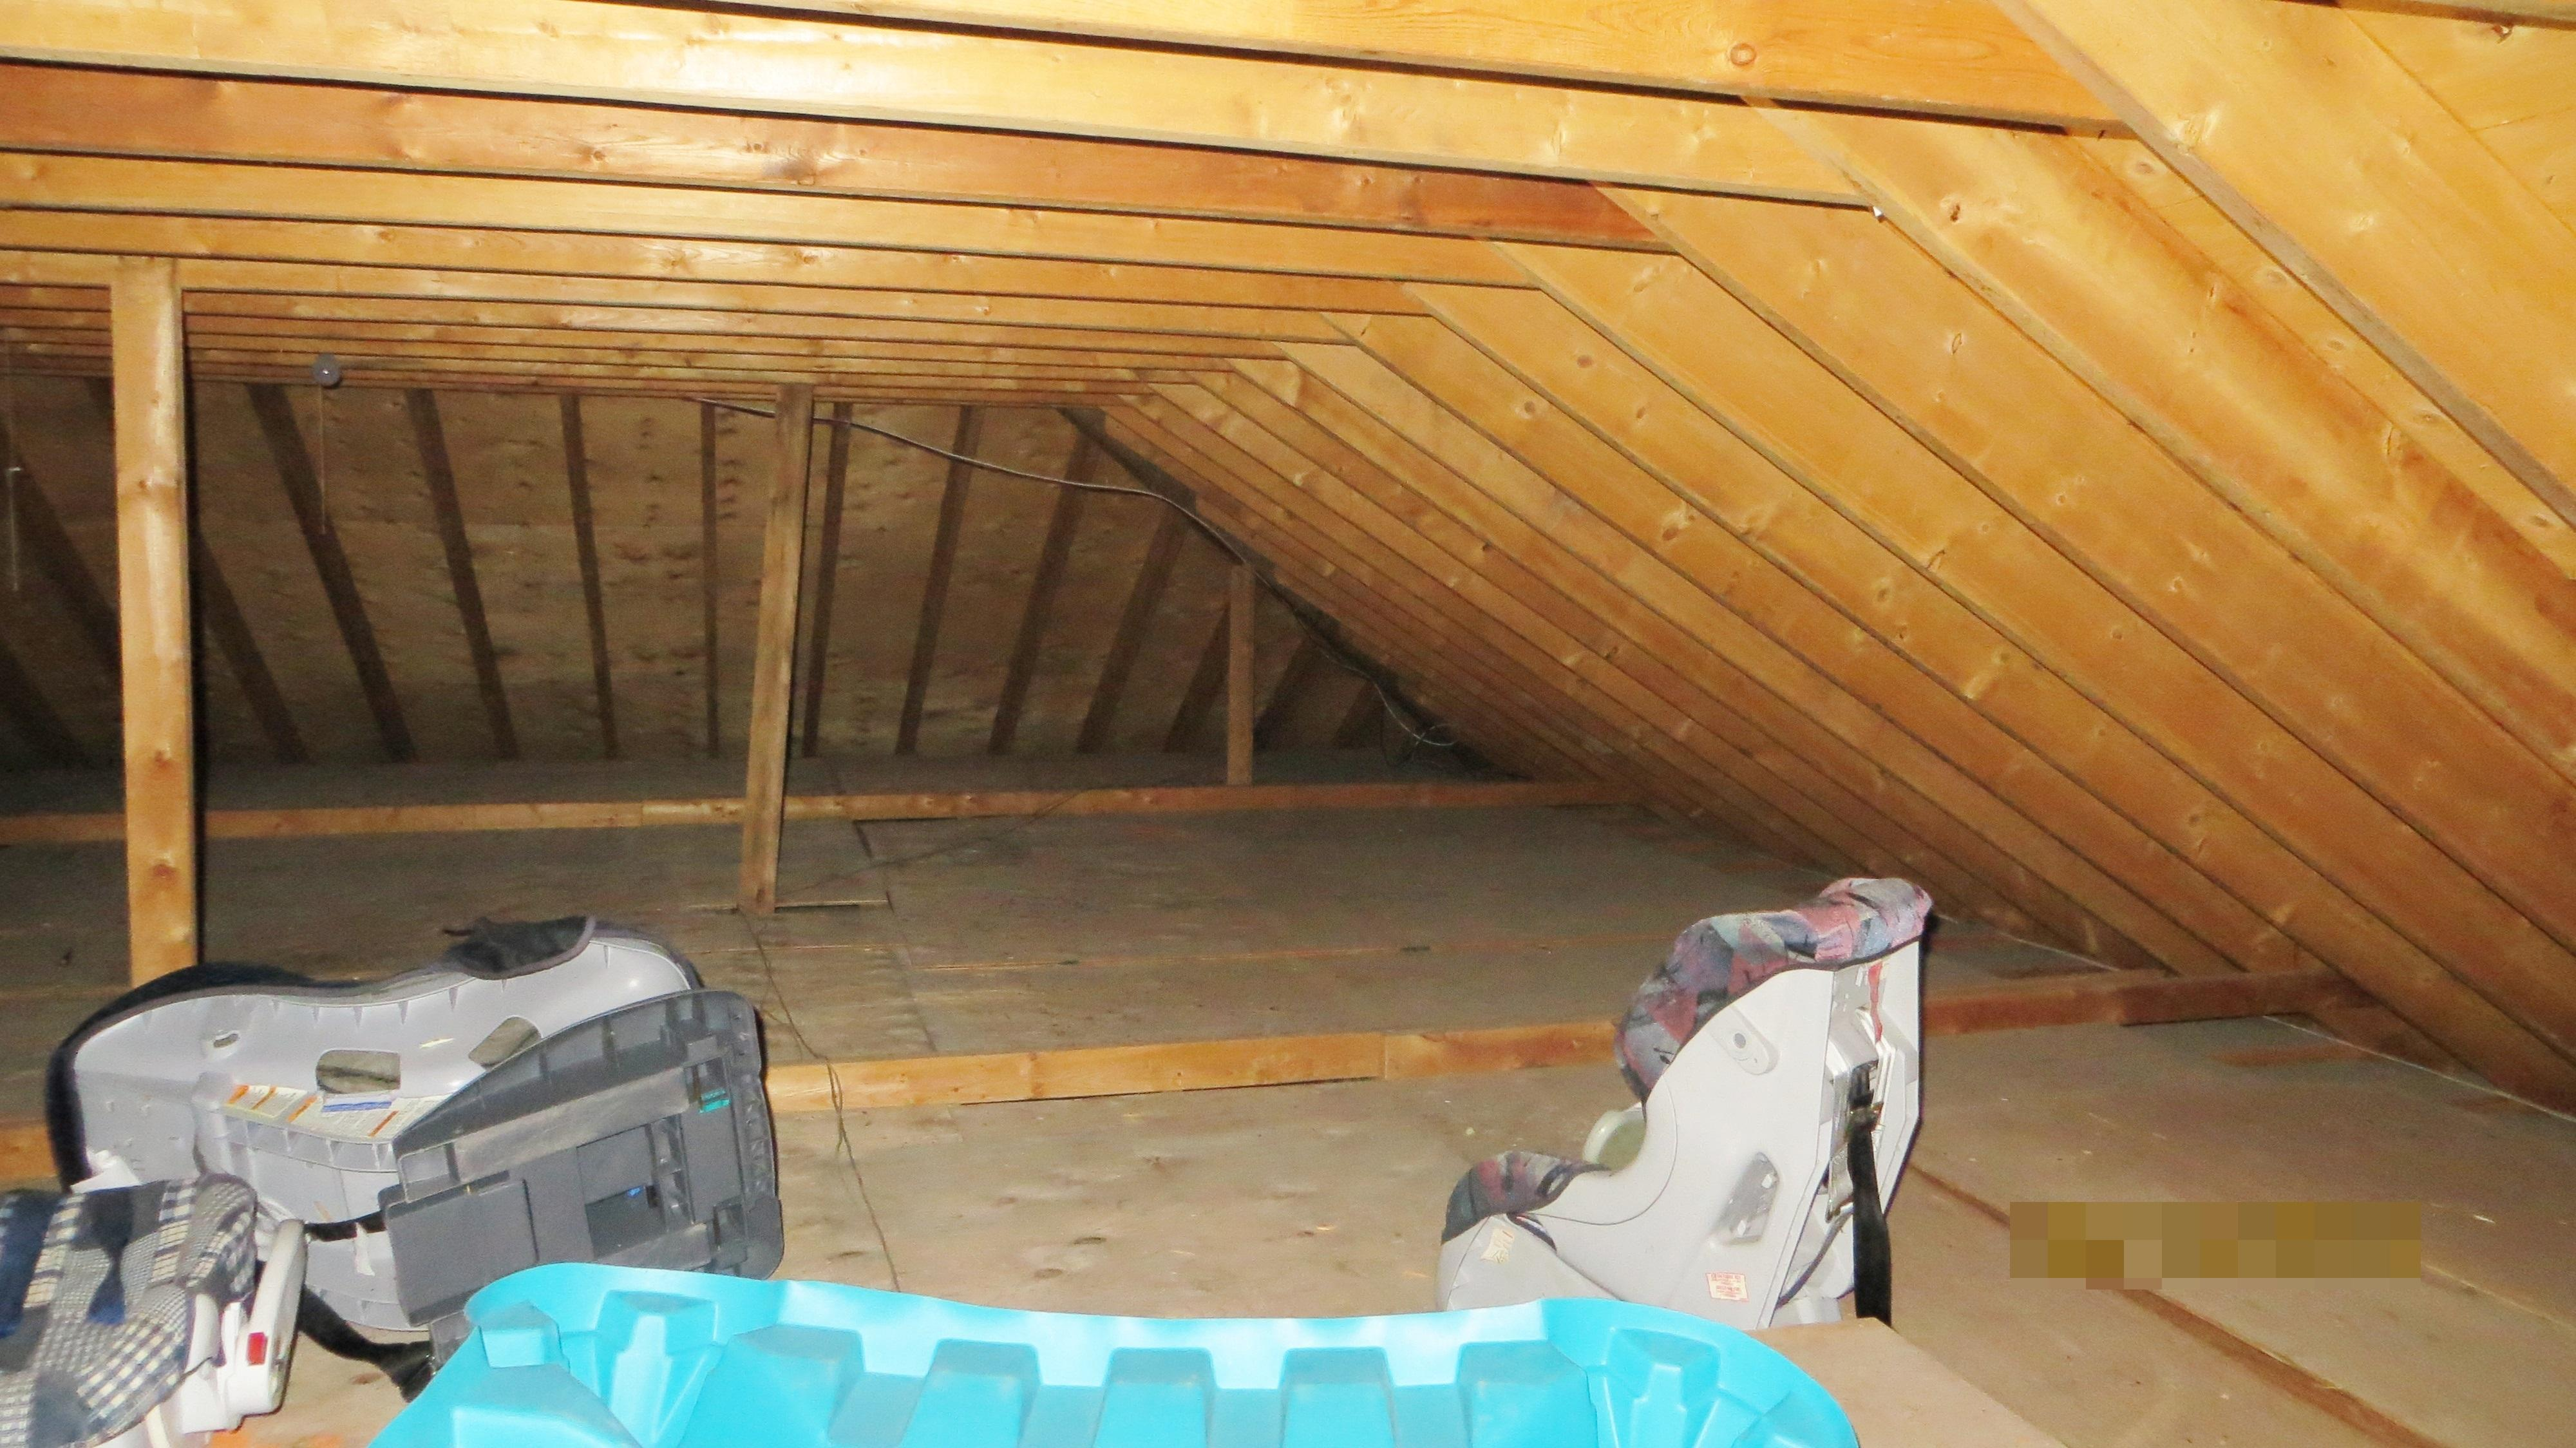 No attic insulation, heat loss